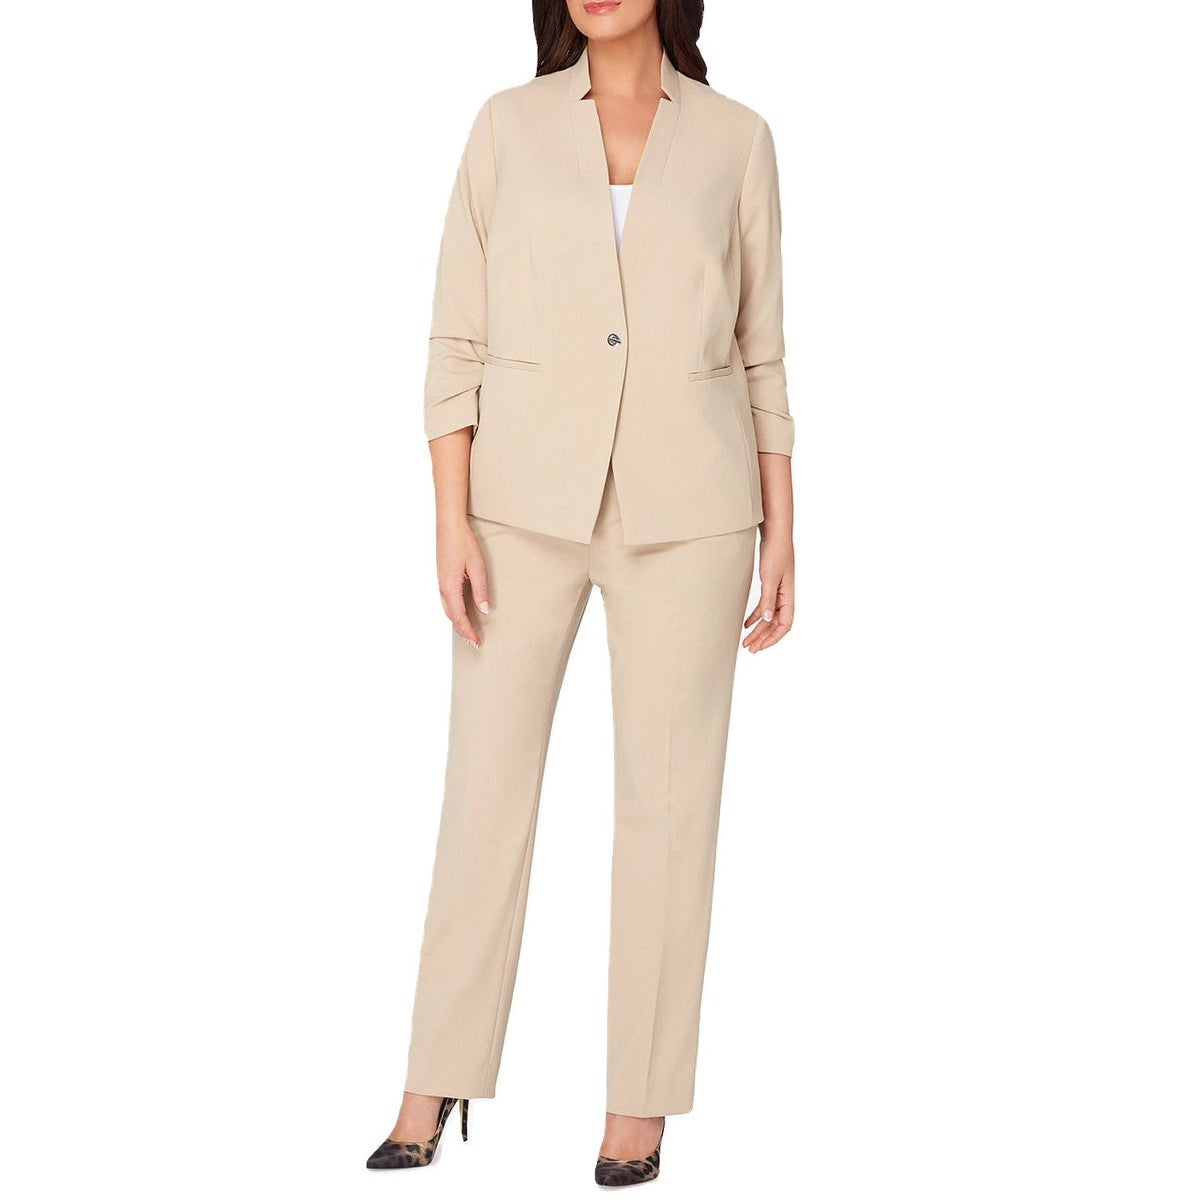 08bf84e8f56 Shop Tahari ASL Plus Size Ruched 3 4 Sleeve Jacket Pant Suit Beige - 20W -  Free Shipping Today - Overstock.com - 19664286